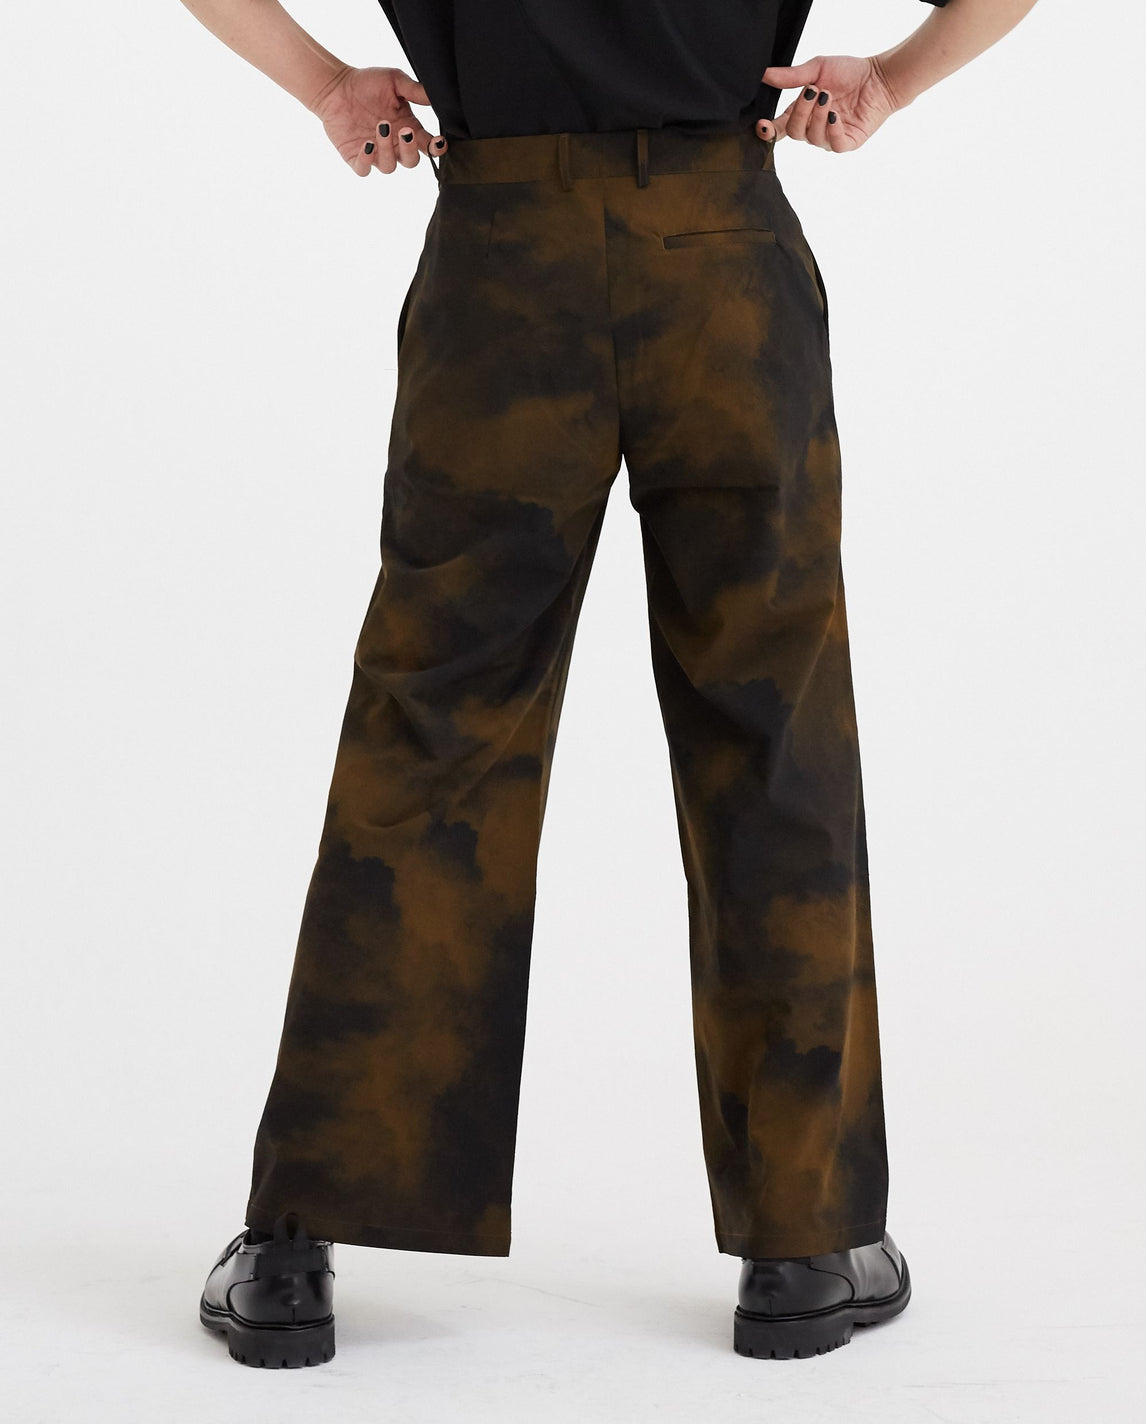 Woven Terrain Print Pants - Umber MENS A-COLD-WALL*